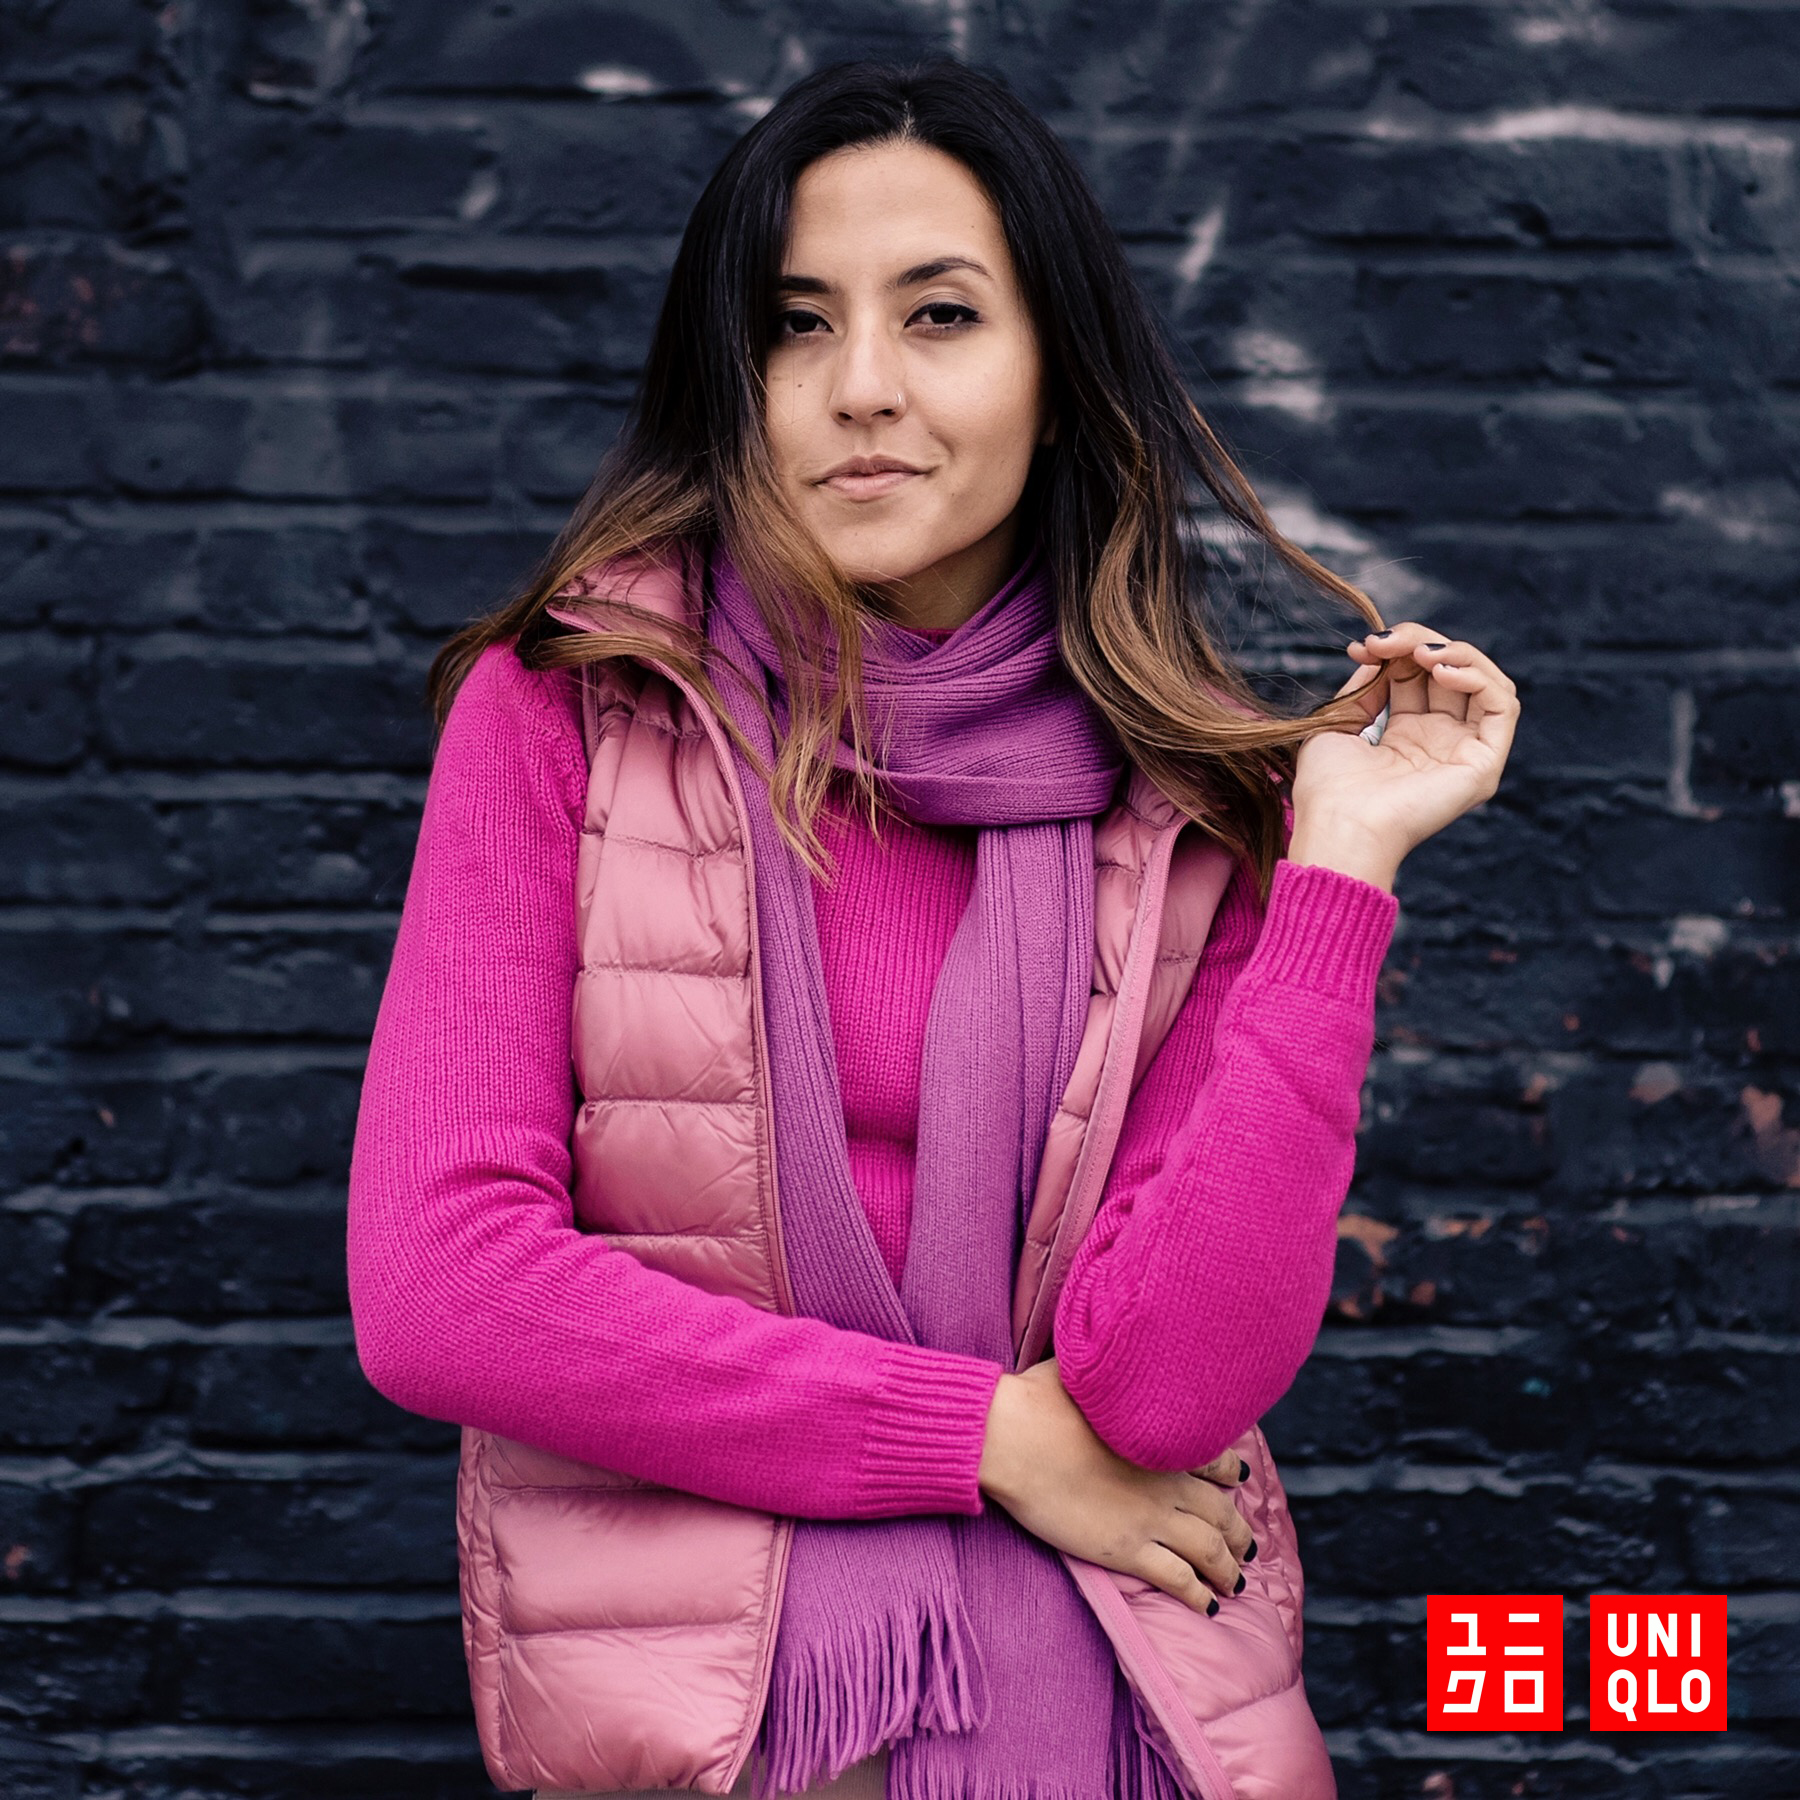 uniqlo_givecolor_pink